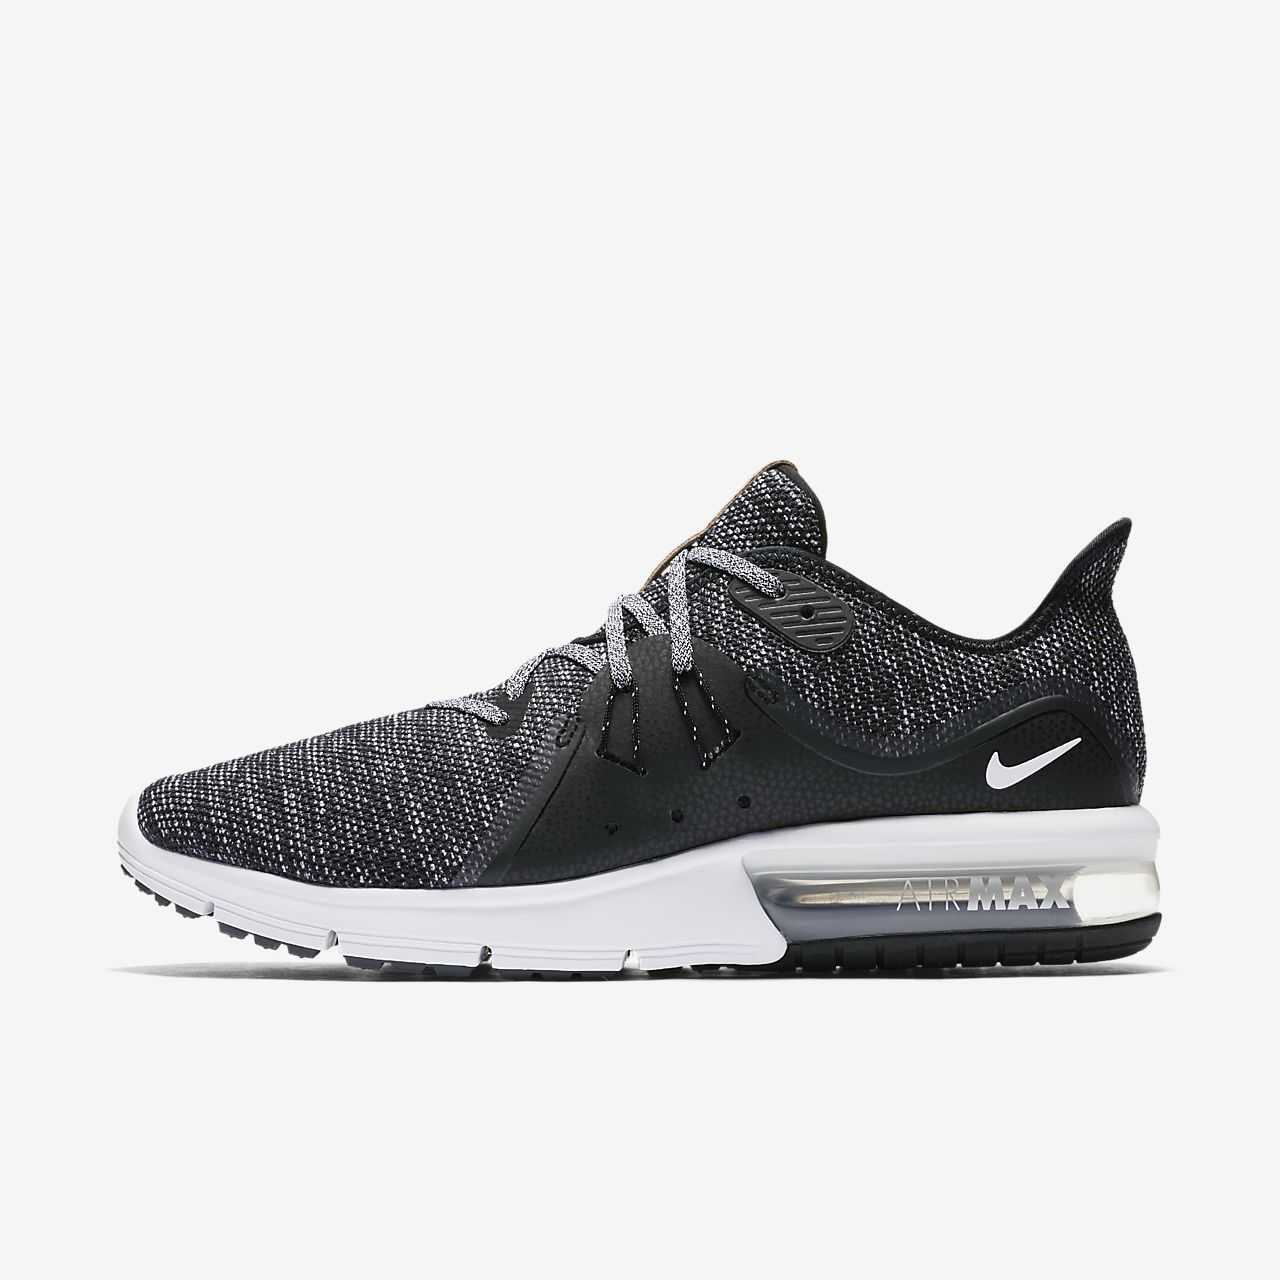 the best attitude c38a3 1f496 ... Buty męskie Nike Air Max Sequent 3